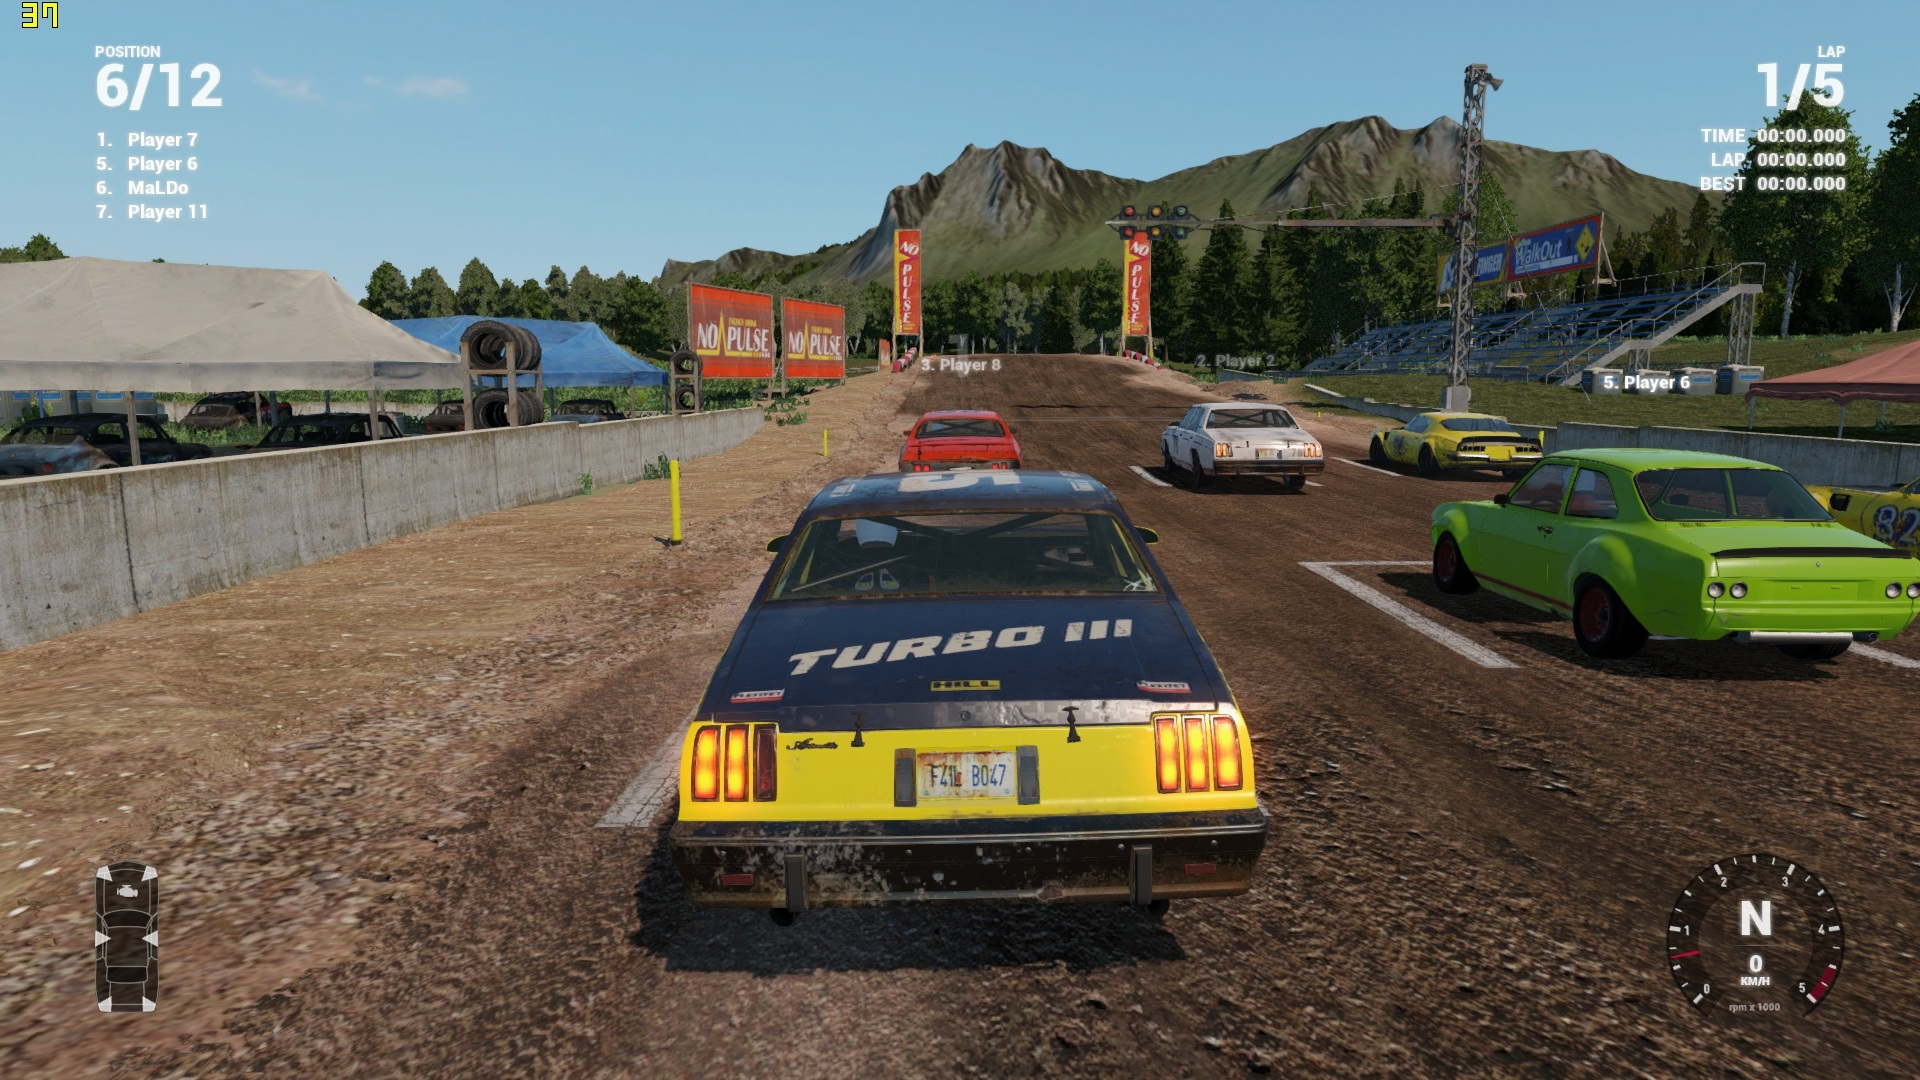 Next car game release for ps3